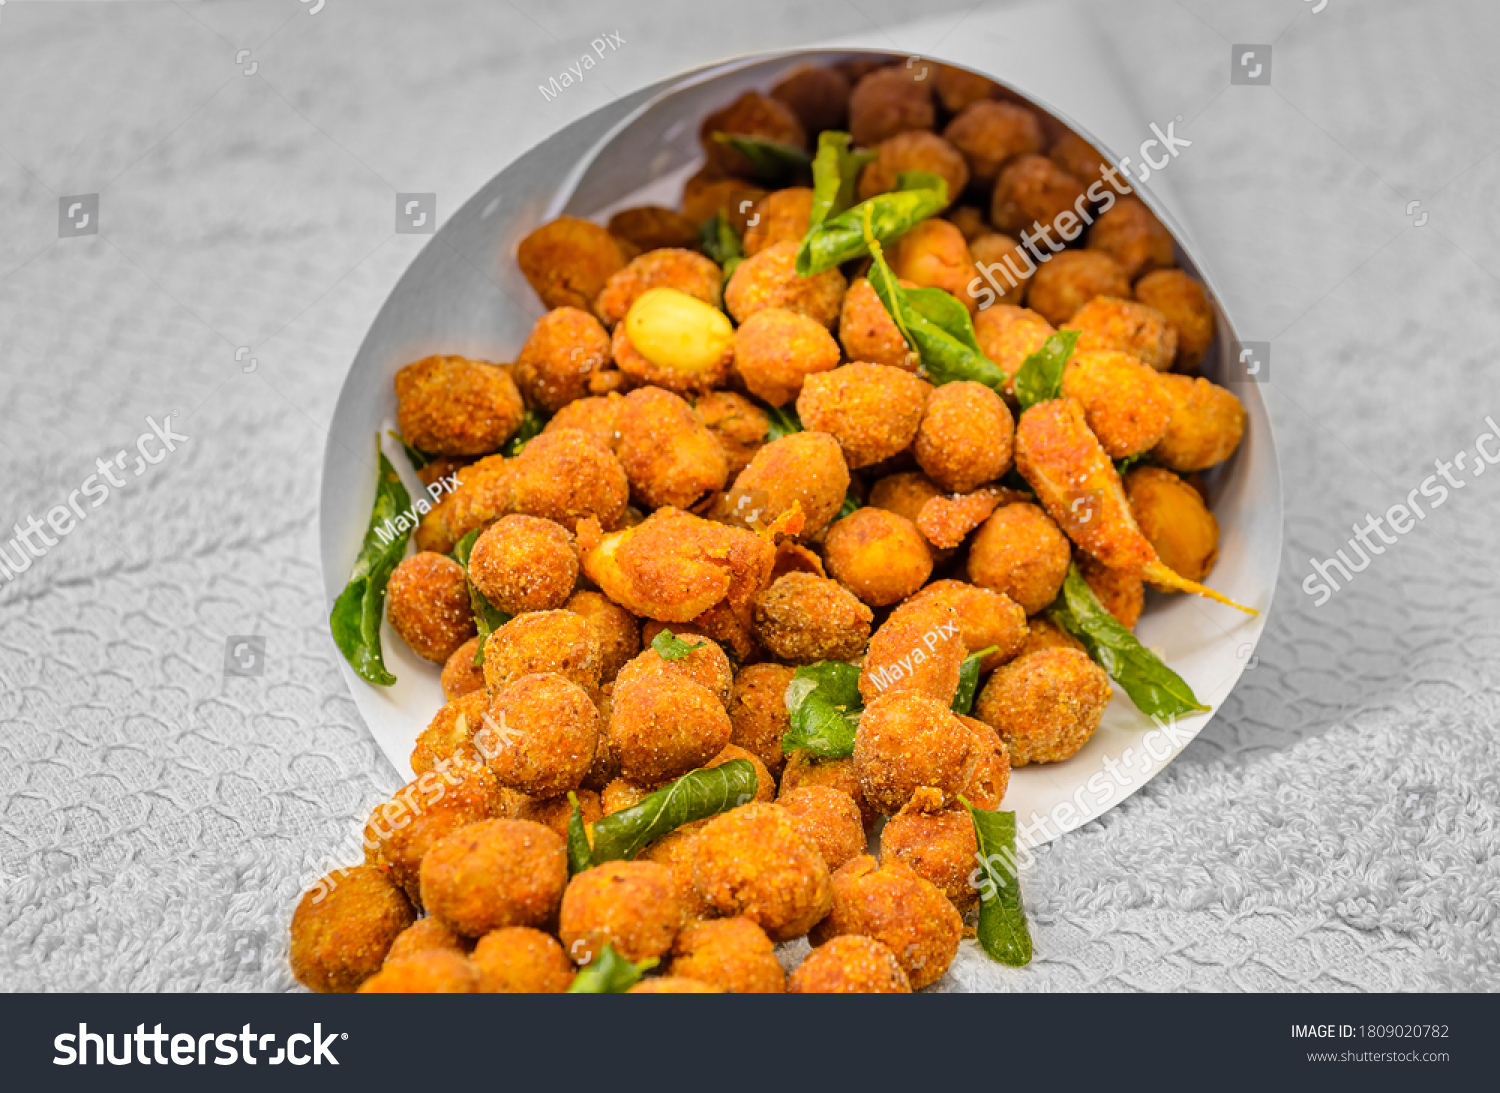 Traditional Indian snack - Masala Peanuts  with Fried Curry Leaves in a Paper Cone